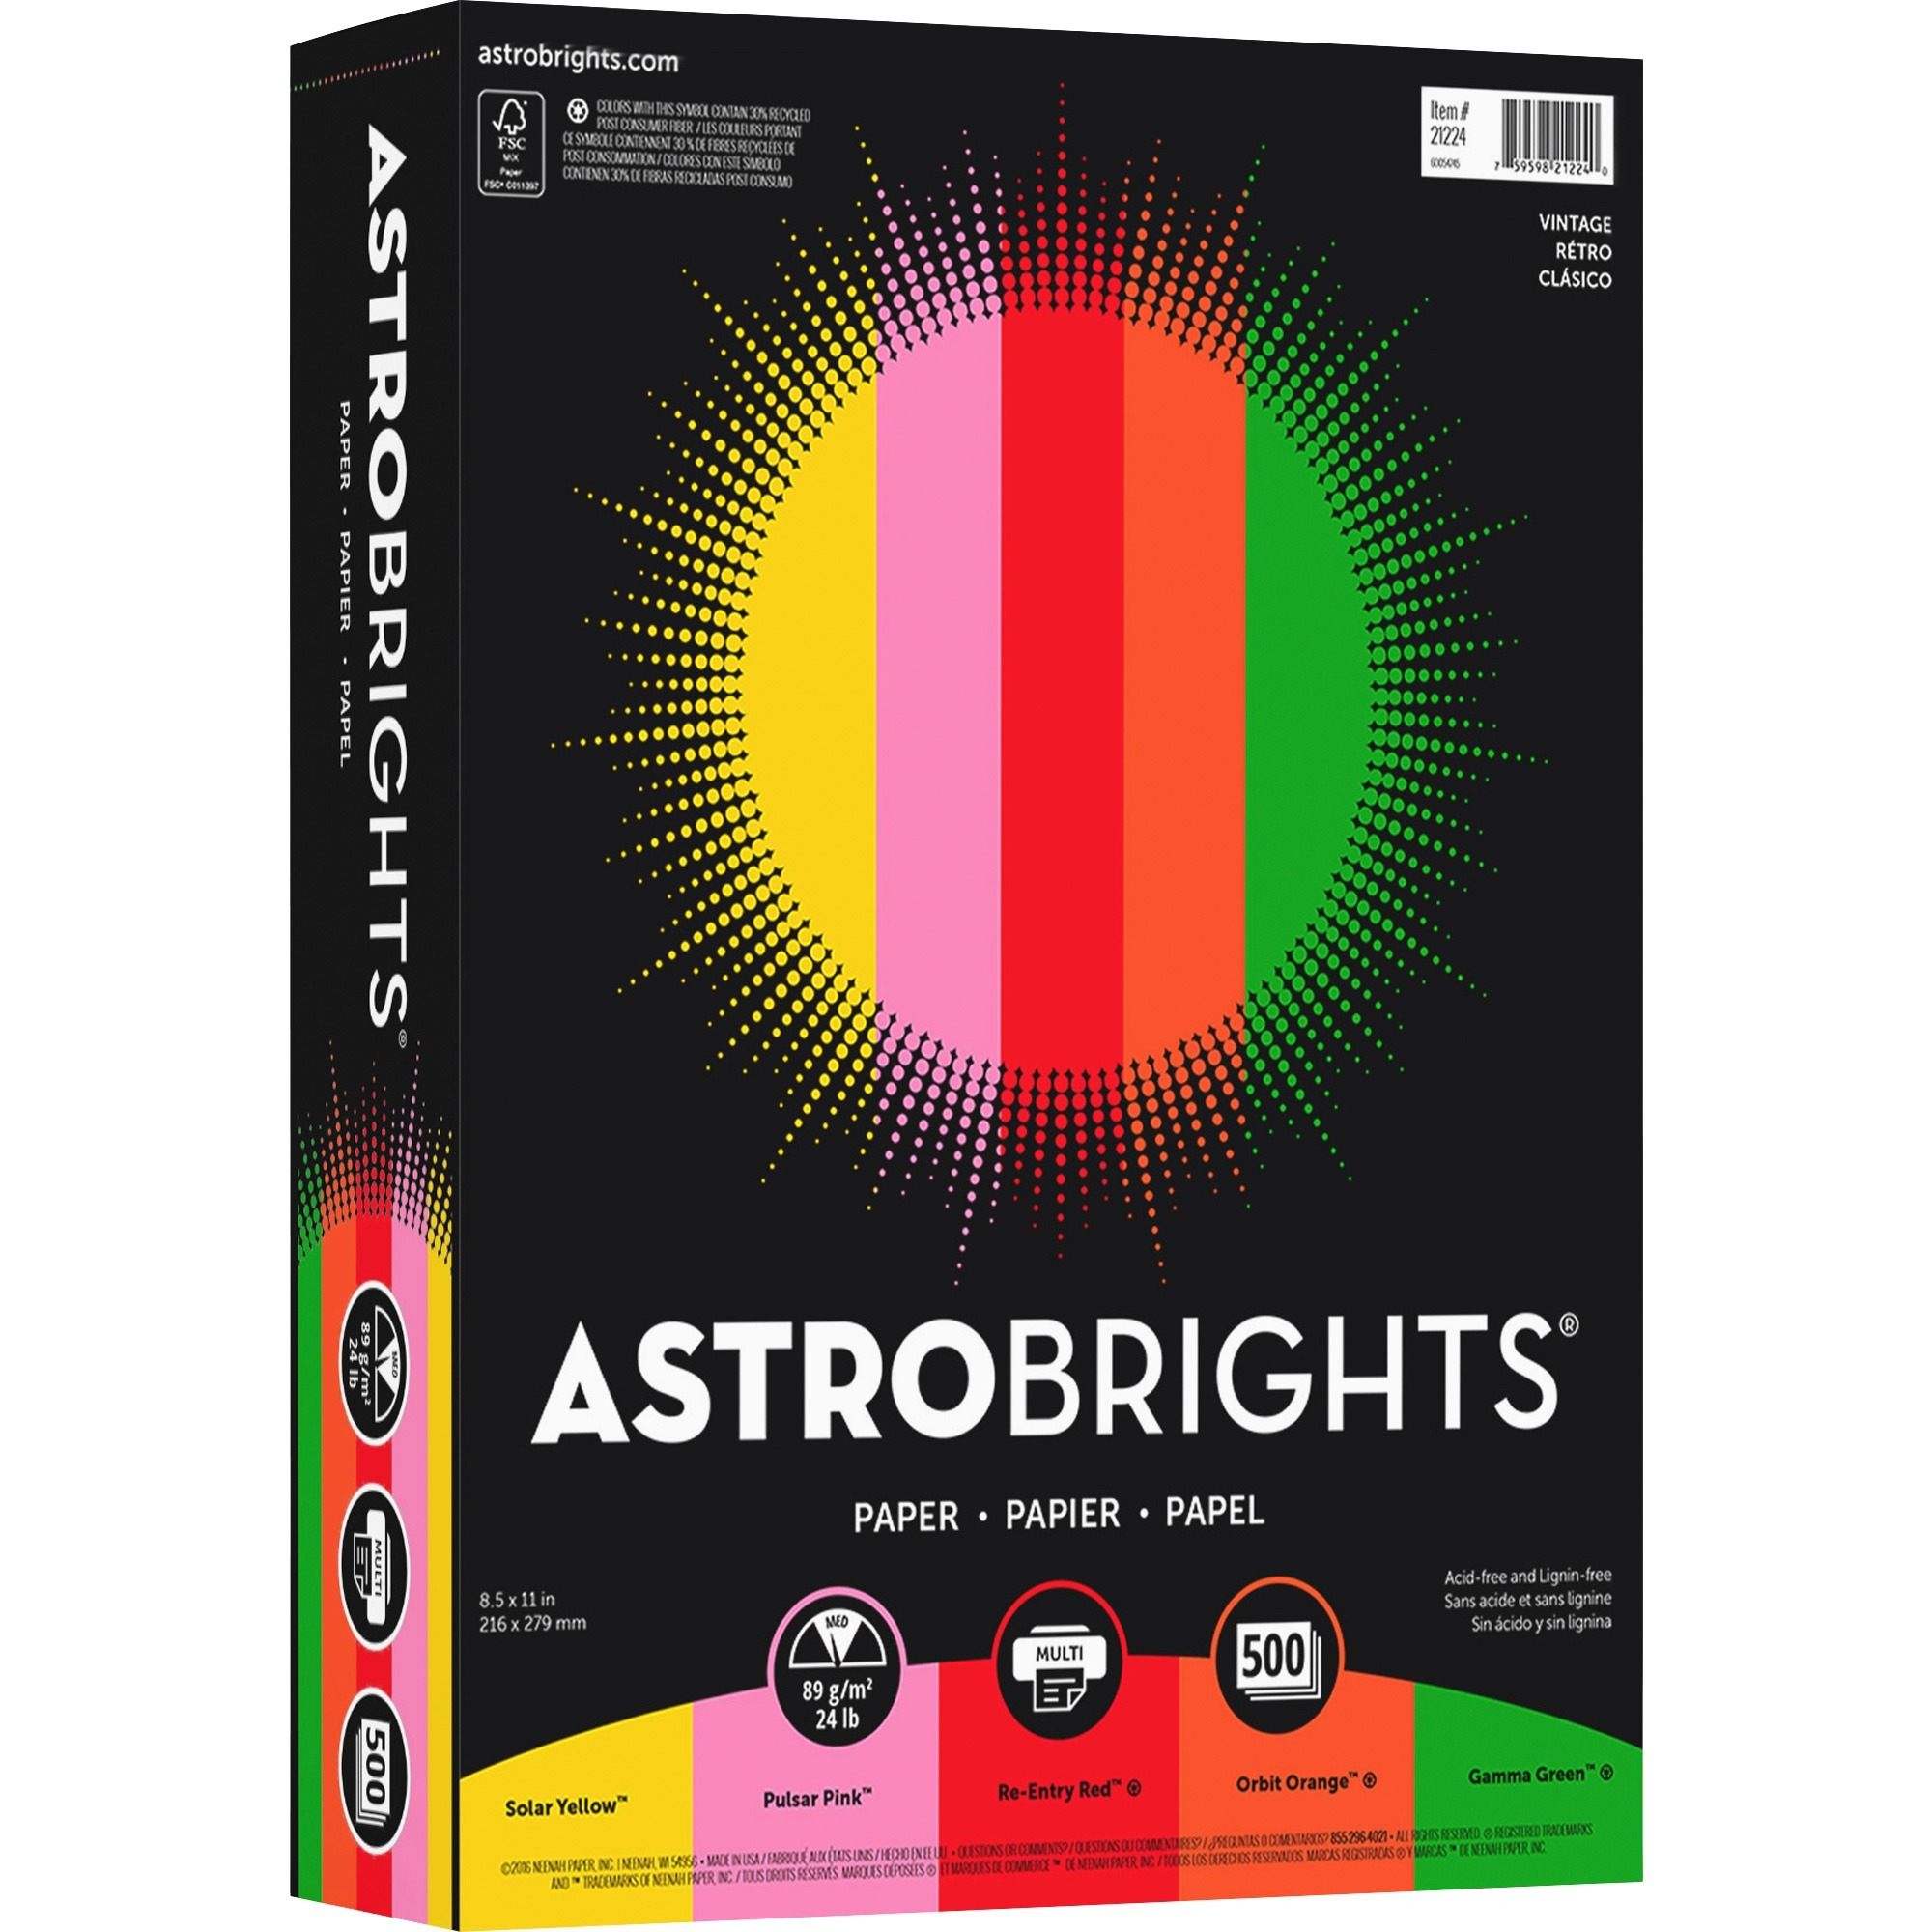 "Astrobrights, WAU21224, Color Paper - ""Vintage"" 5-Color Assortment, 500 / Ream, Solar Yellow,Pulsar Pink,Re-entry Red,Orbit Orange,Gamma Green"